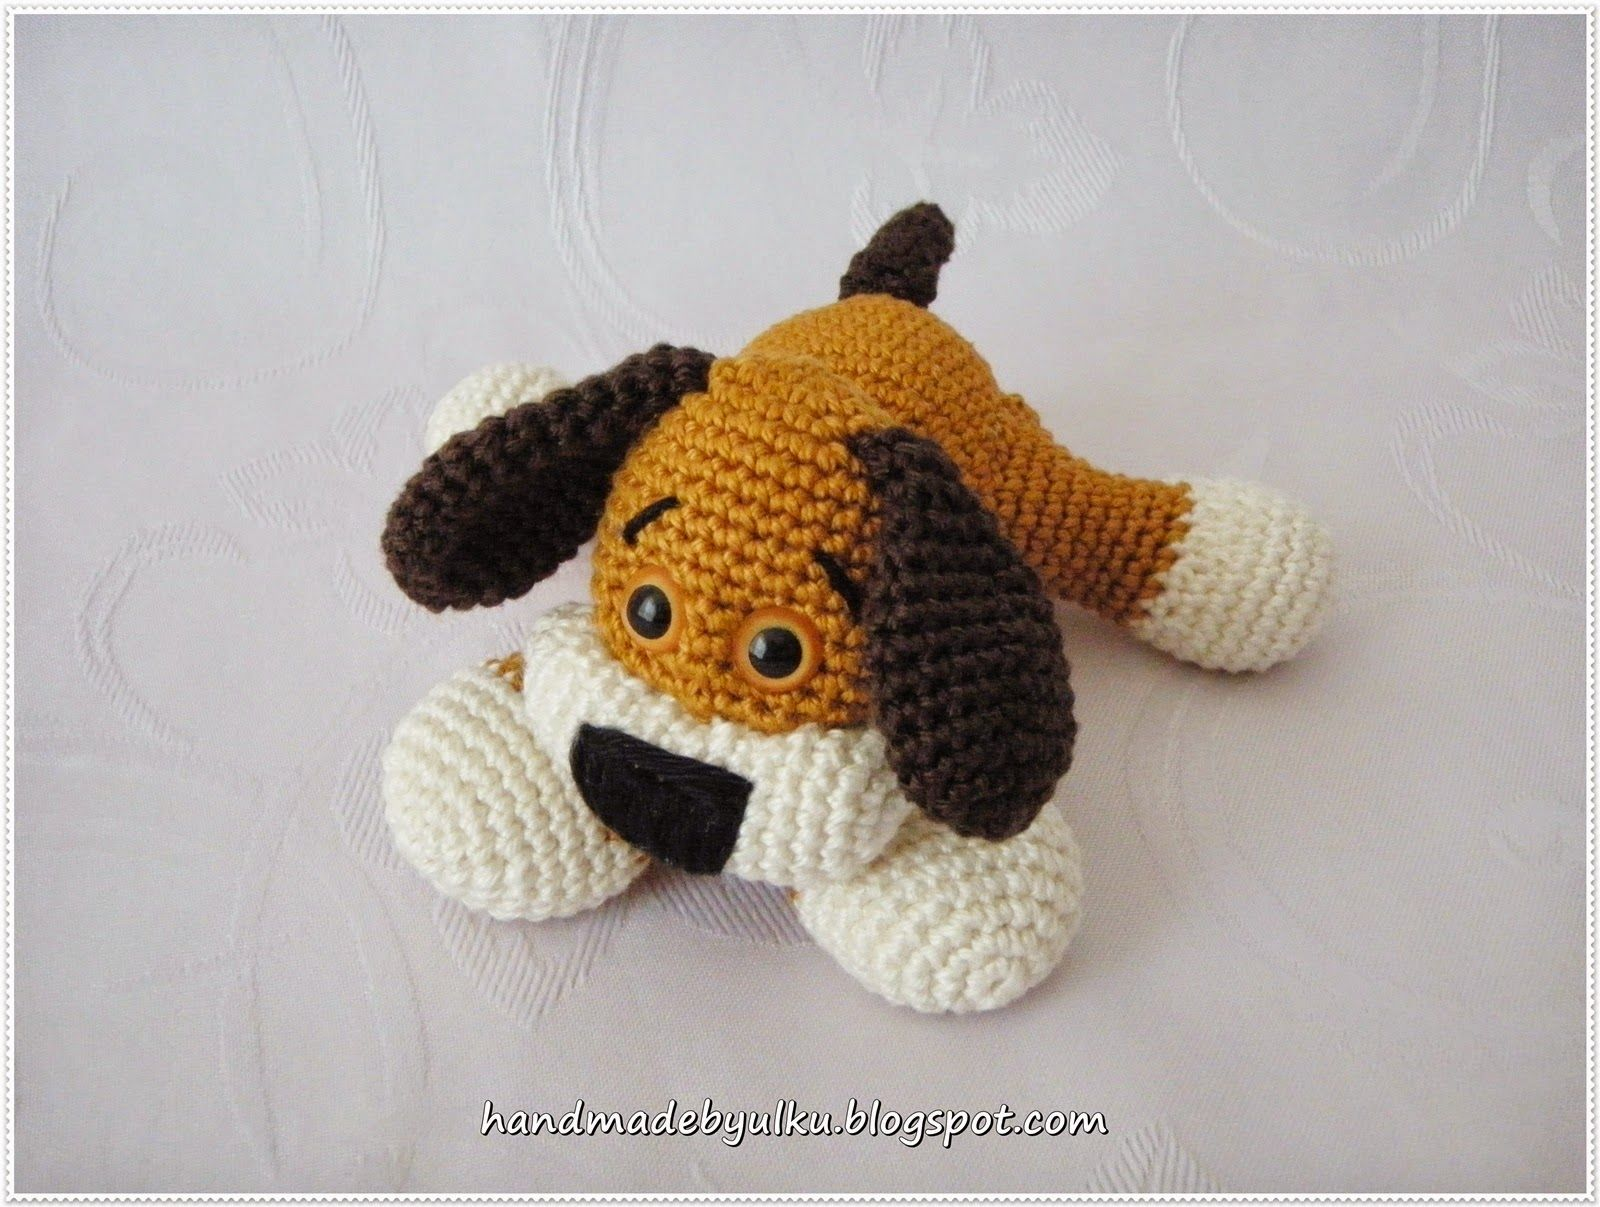 Amigurumi animals free patterns crochet : Amigurumi dog free crochet pattern tutorial by